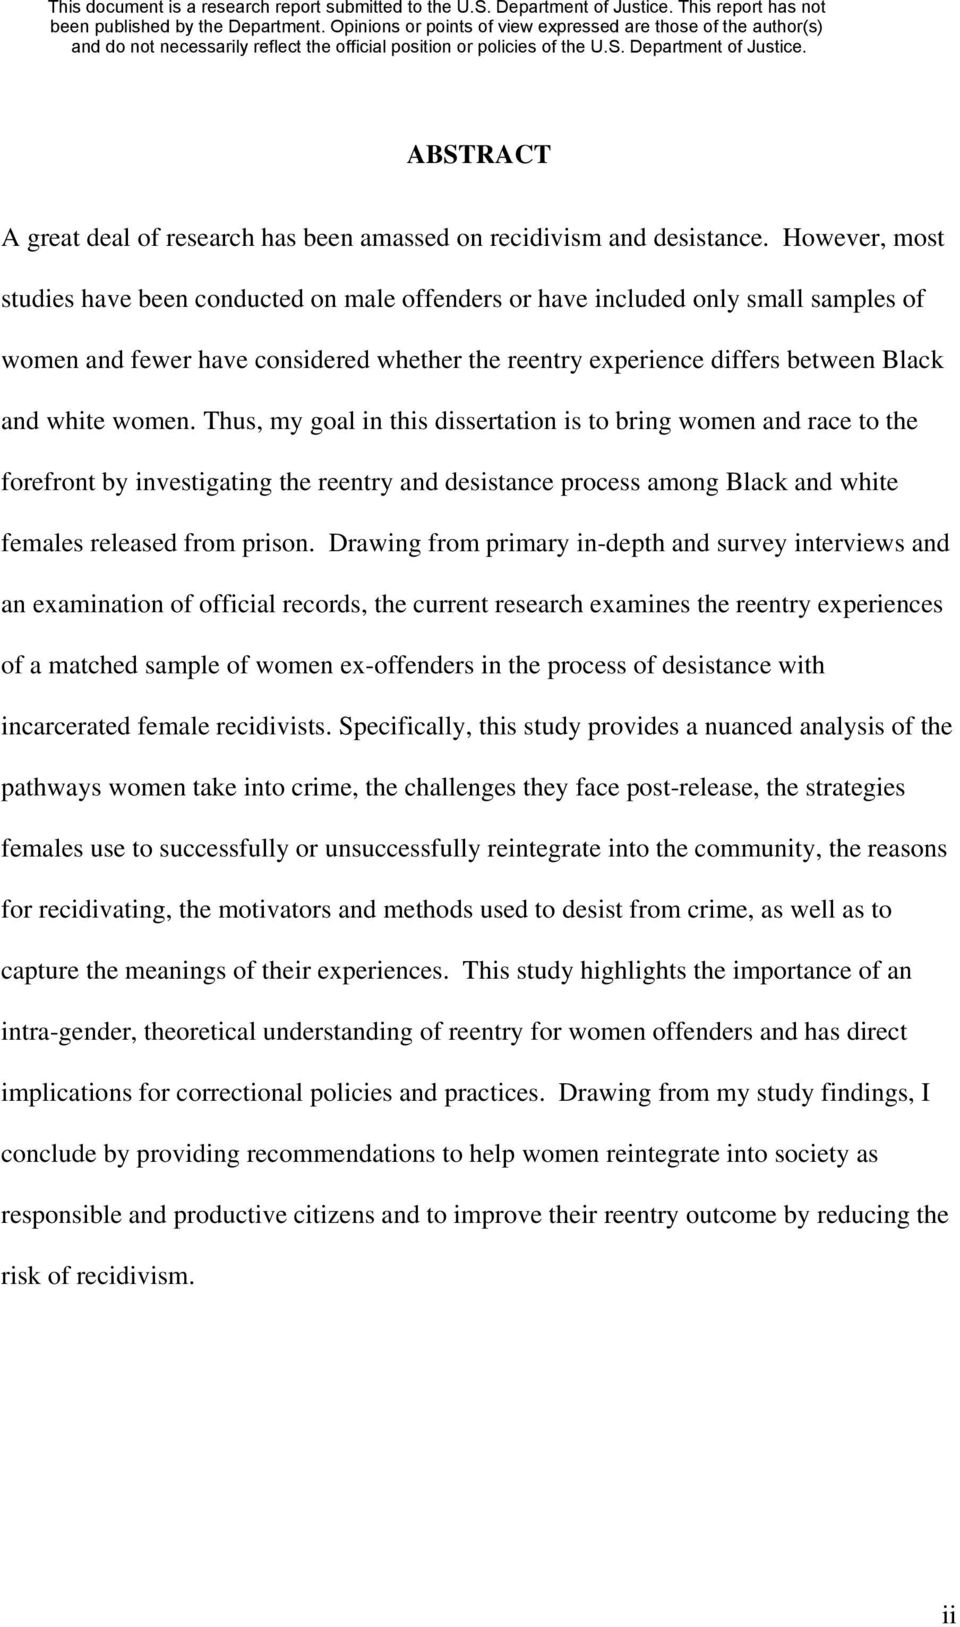 Thus, my goal in this dissertation is to bring women and race to the forefront by investigating the reentry and desistance process among Black and white females released from prison.